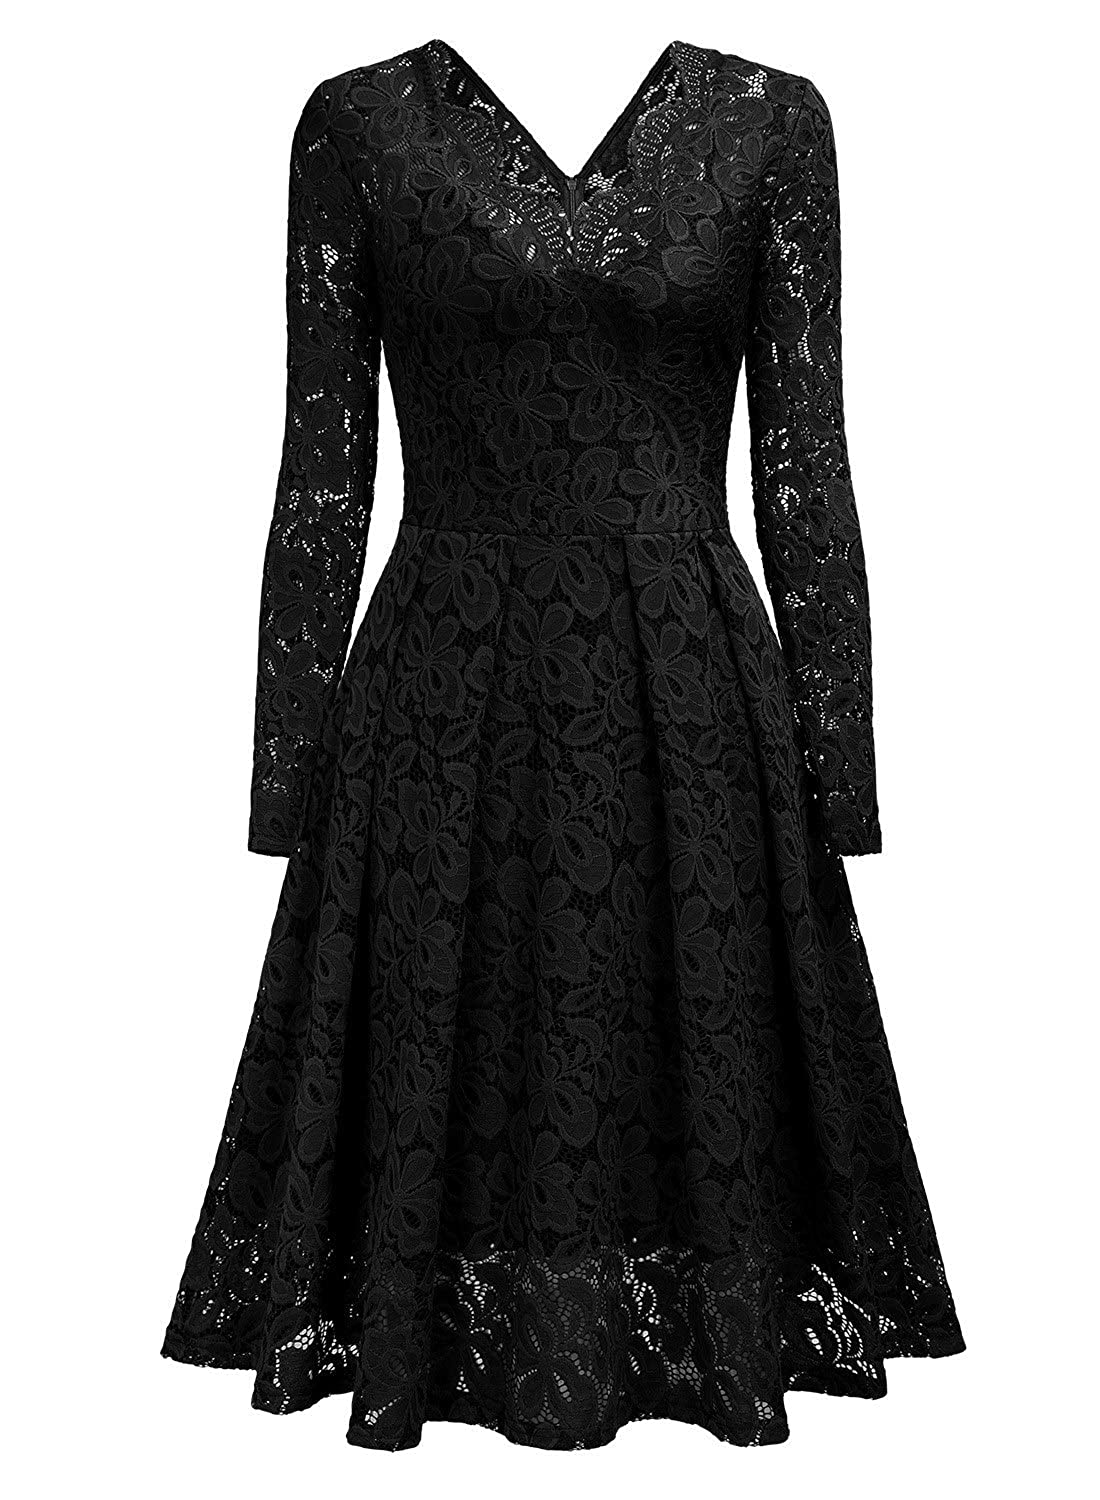 ed1d992f84 MISSMAY Women s Vintage Floral Lace V-Neck Cocktail Formal Swing Dress